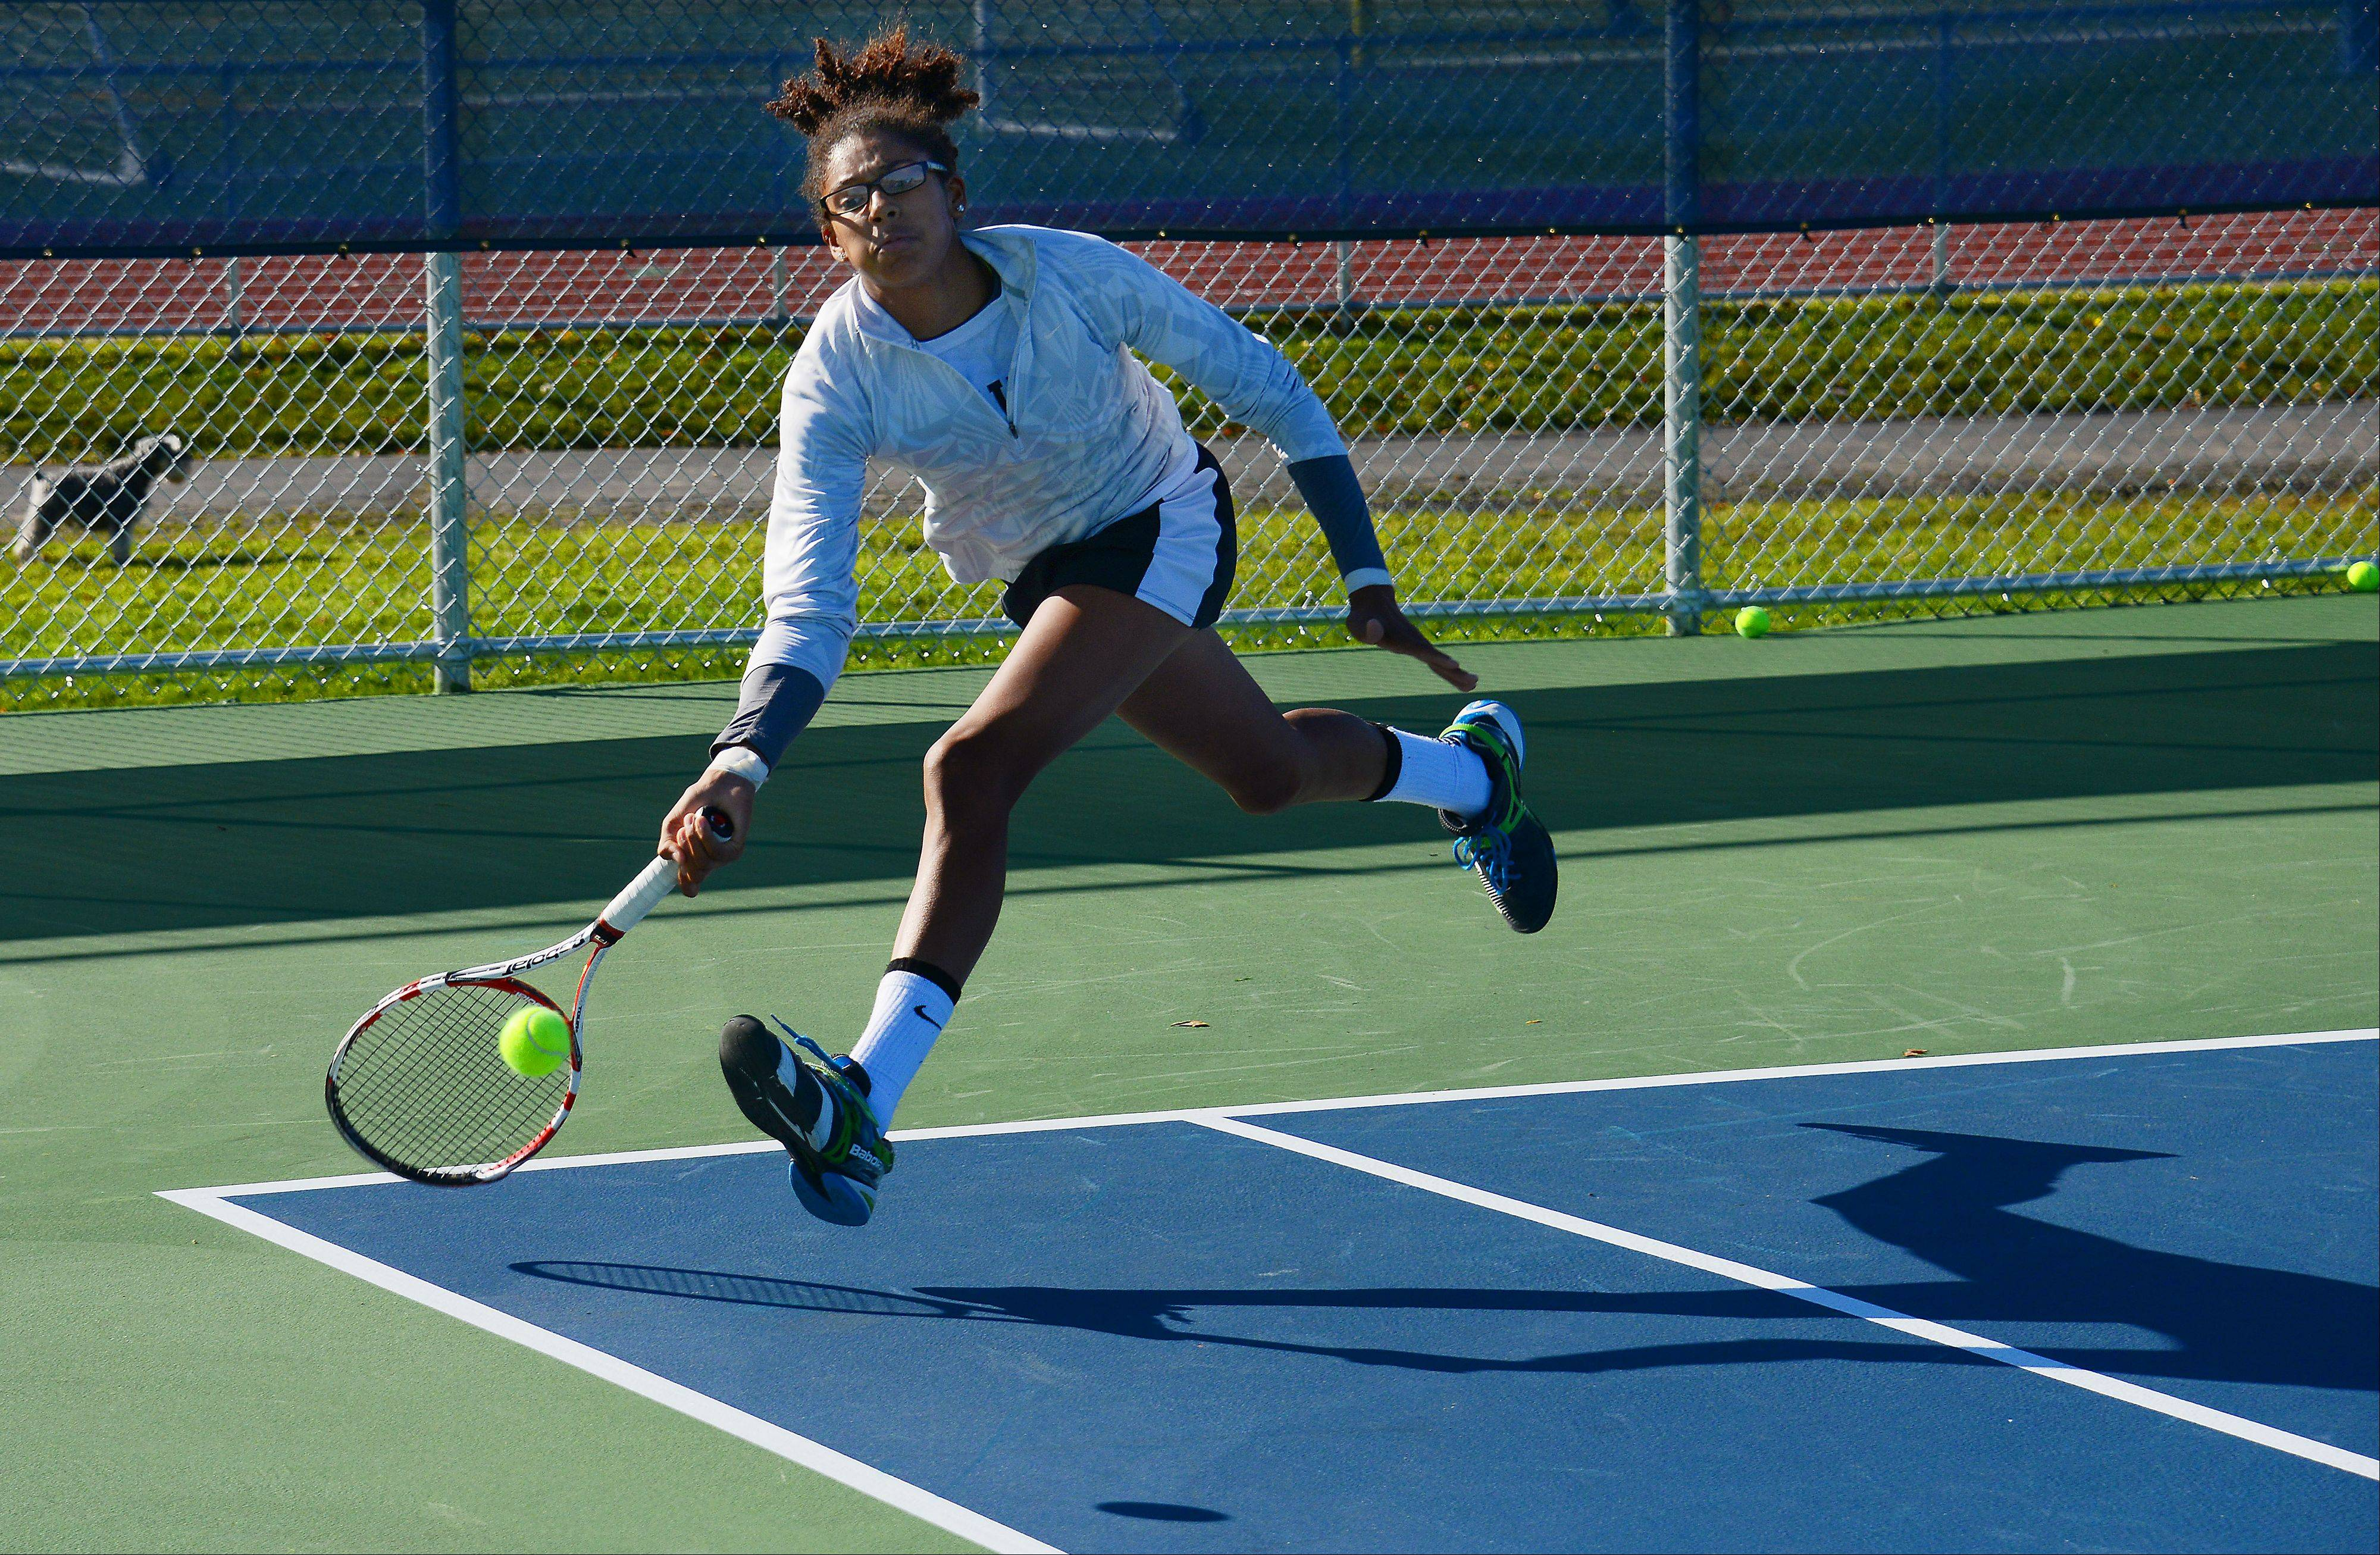 Wheaton Warrenville South's Keisha Clousing returns a serve in the state girls tennis semifinals singles matchup against Brienne Minor of Carmel High School at Buffalo Grove High School on Saturday.